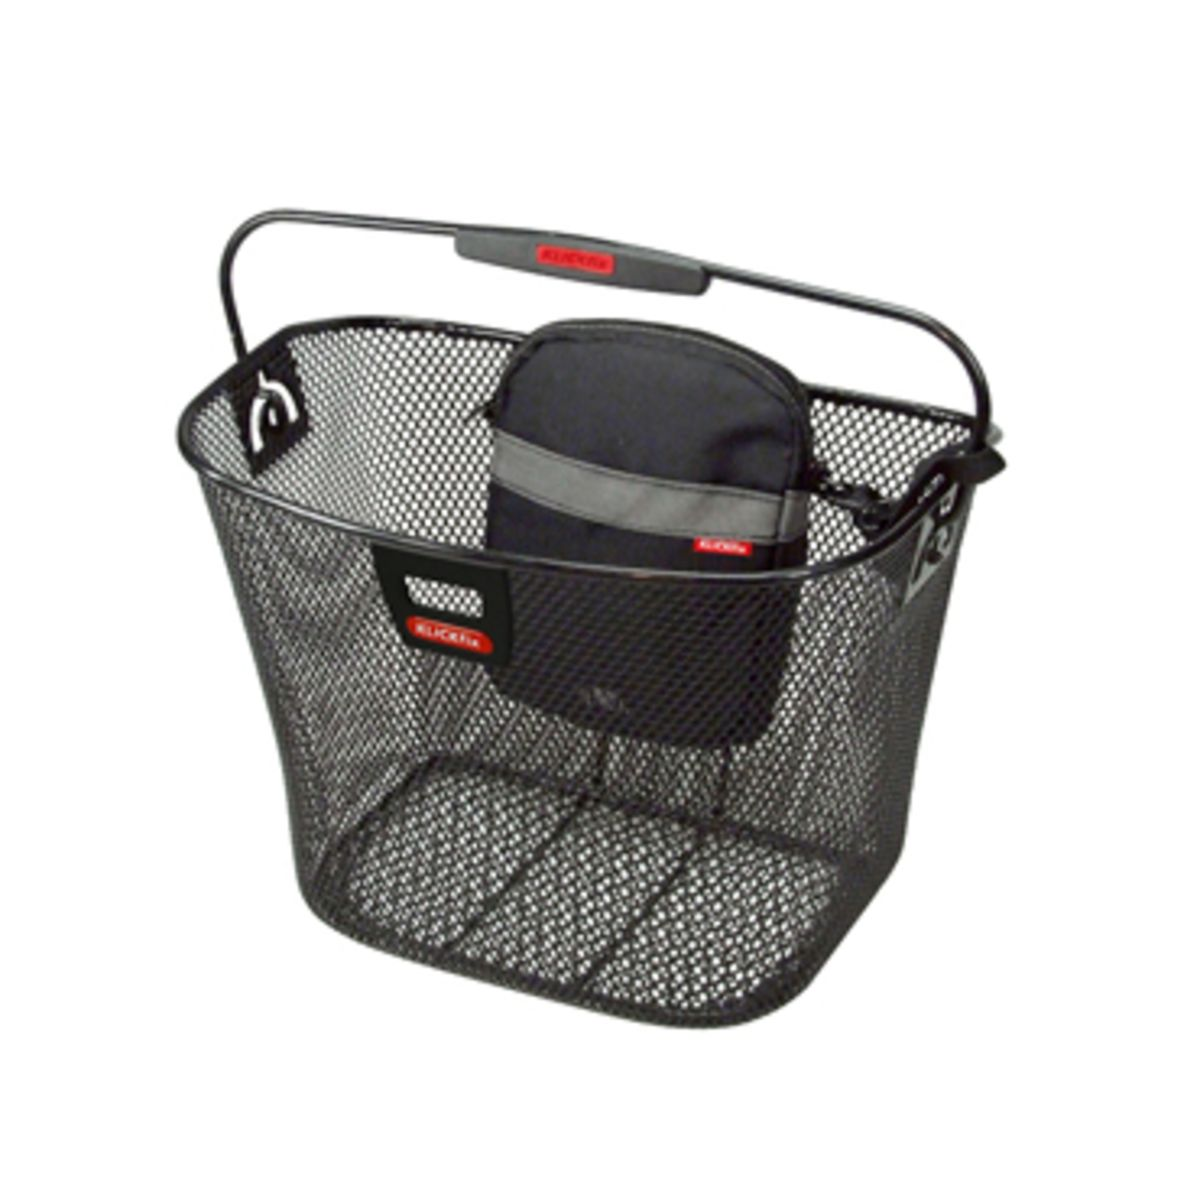 KLICKfix UNI KORB front bicycle basket with light bracket | Cykelkurve